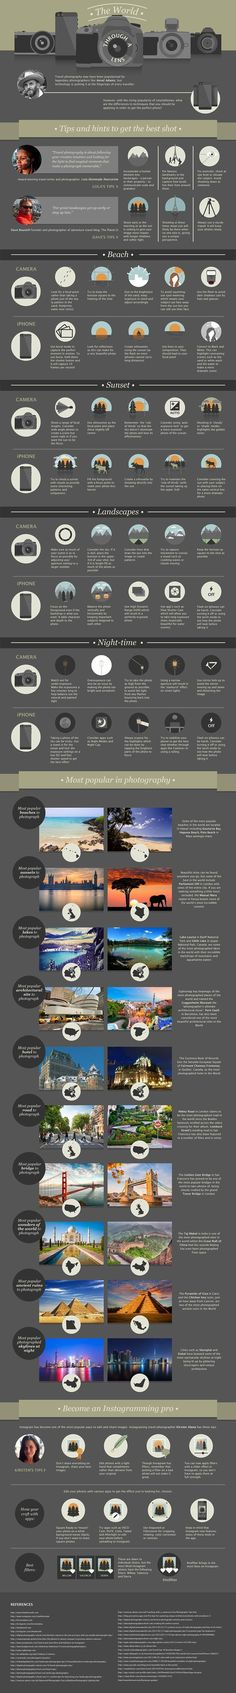 reveal their ultimate travel photography tips Fairmont Hotels' infographic guide to shooting holiday photos pl Photography Cheat Sheets, Photography Basics, Photography Lessons, Iphone Photography, Book Photography, Photography Business, Photography Tutorials, Digital Photography, Canon Photography